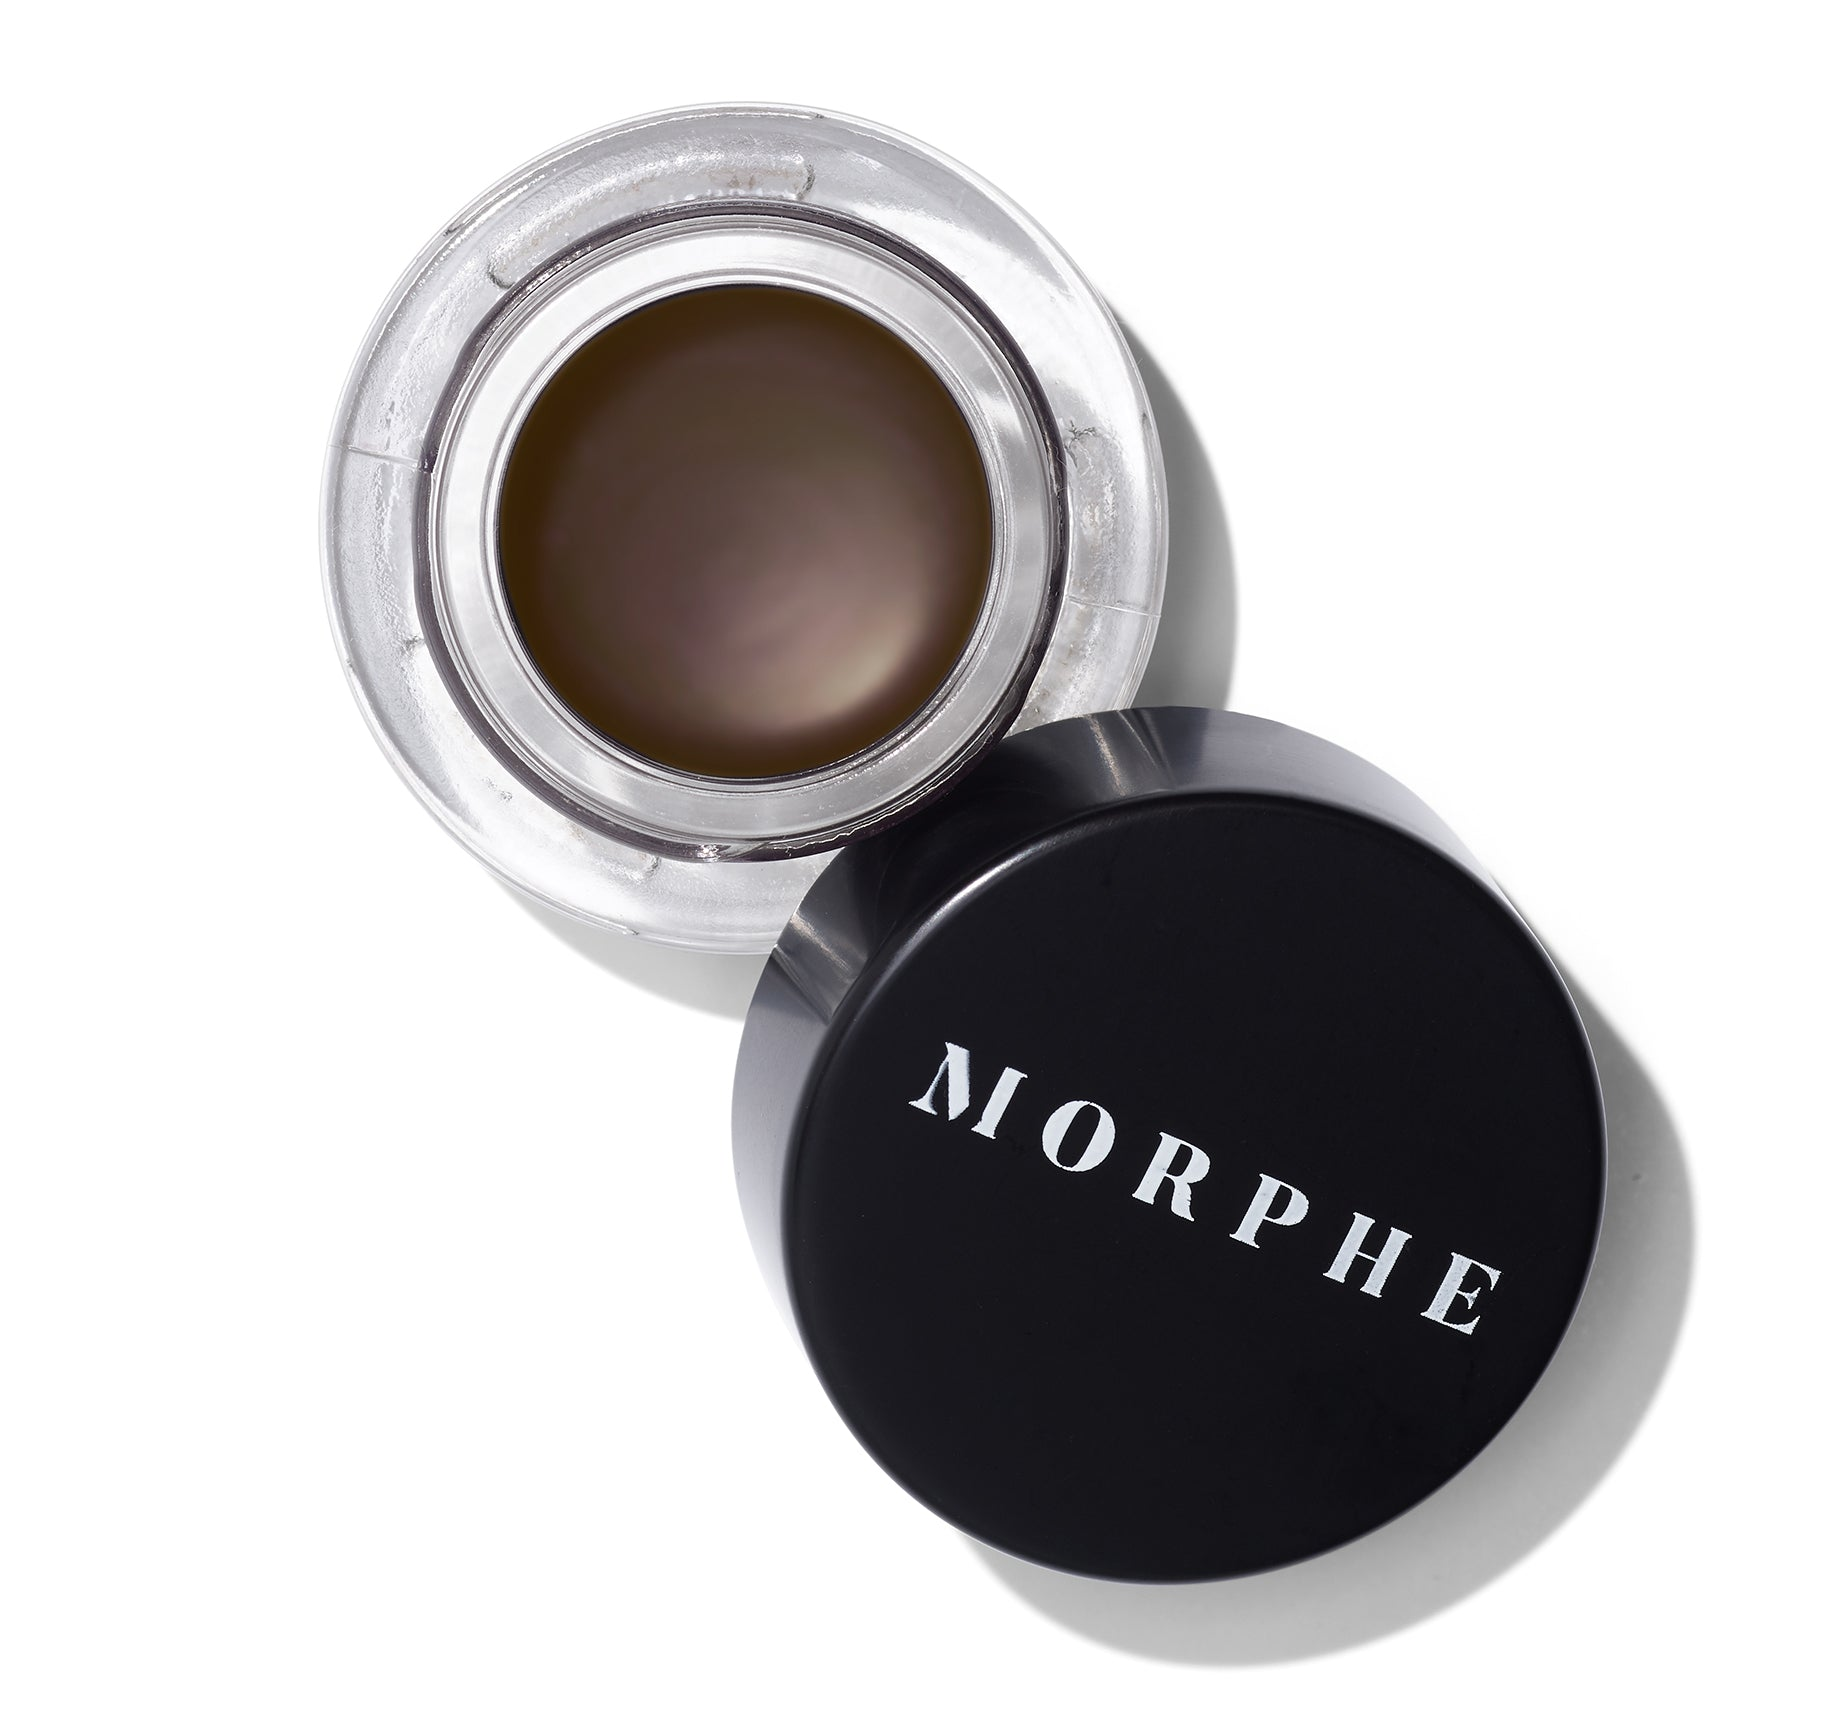 GEL LINER - COFFEE, view larger image